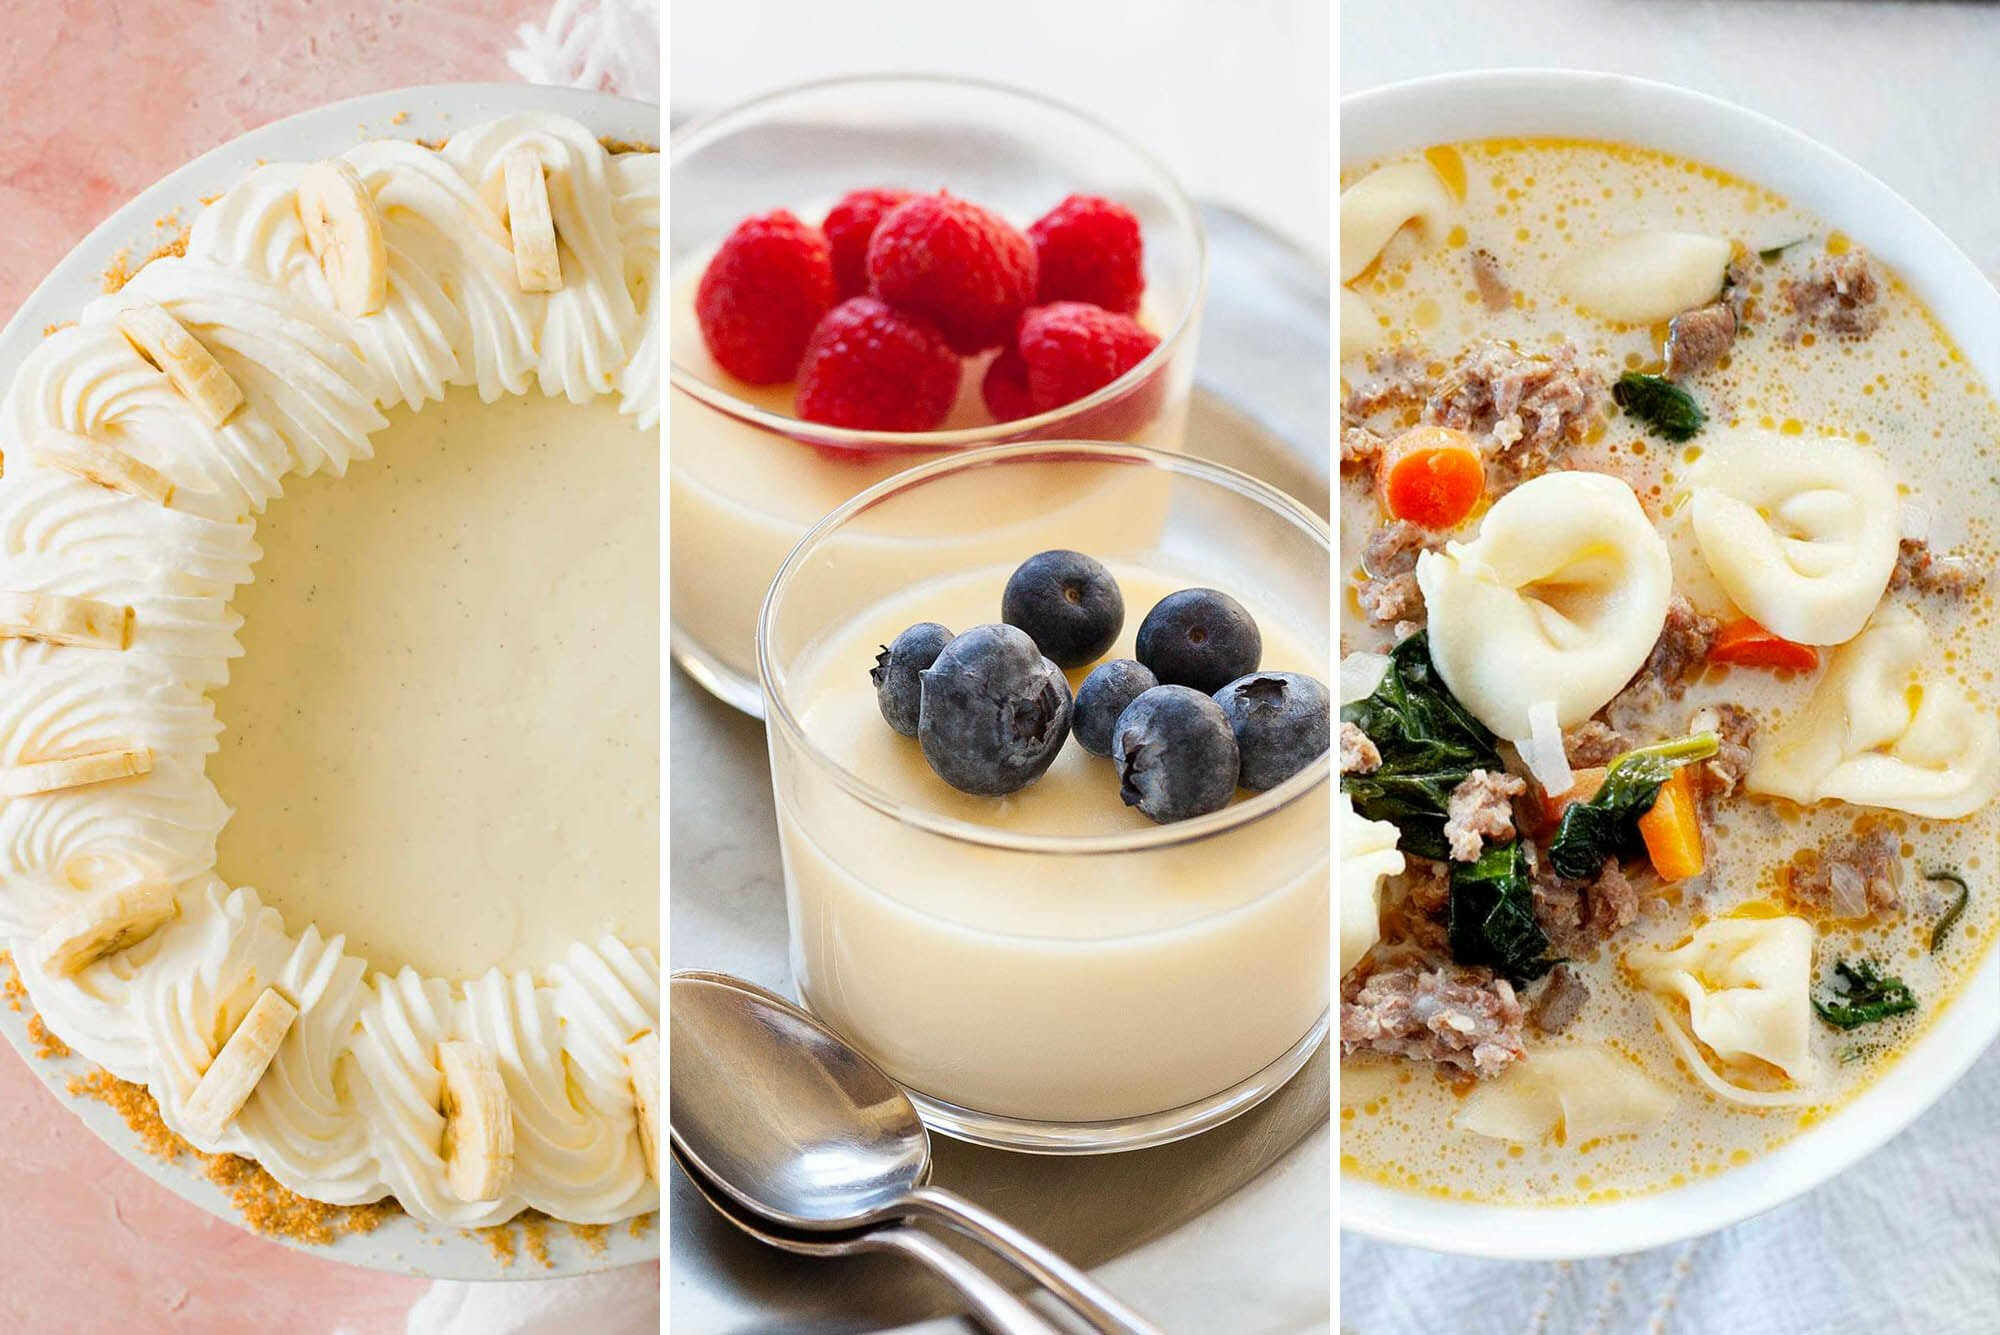 Ways to use heavy cream in recipes. The image to the left is an overhead shot of banana cream pie. The middle photo is two glasses of lemon pudding topped with berries. The image to the right is creamy tortilla soup.